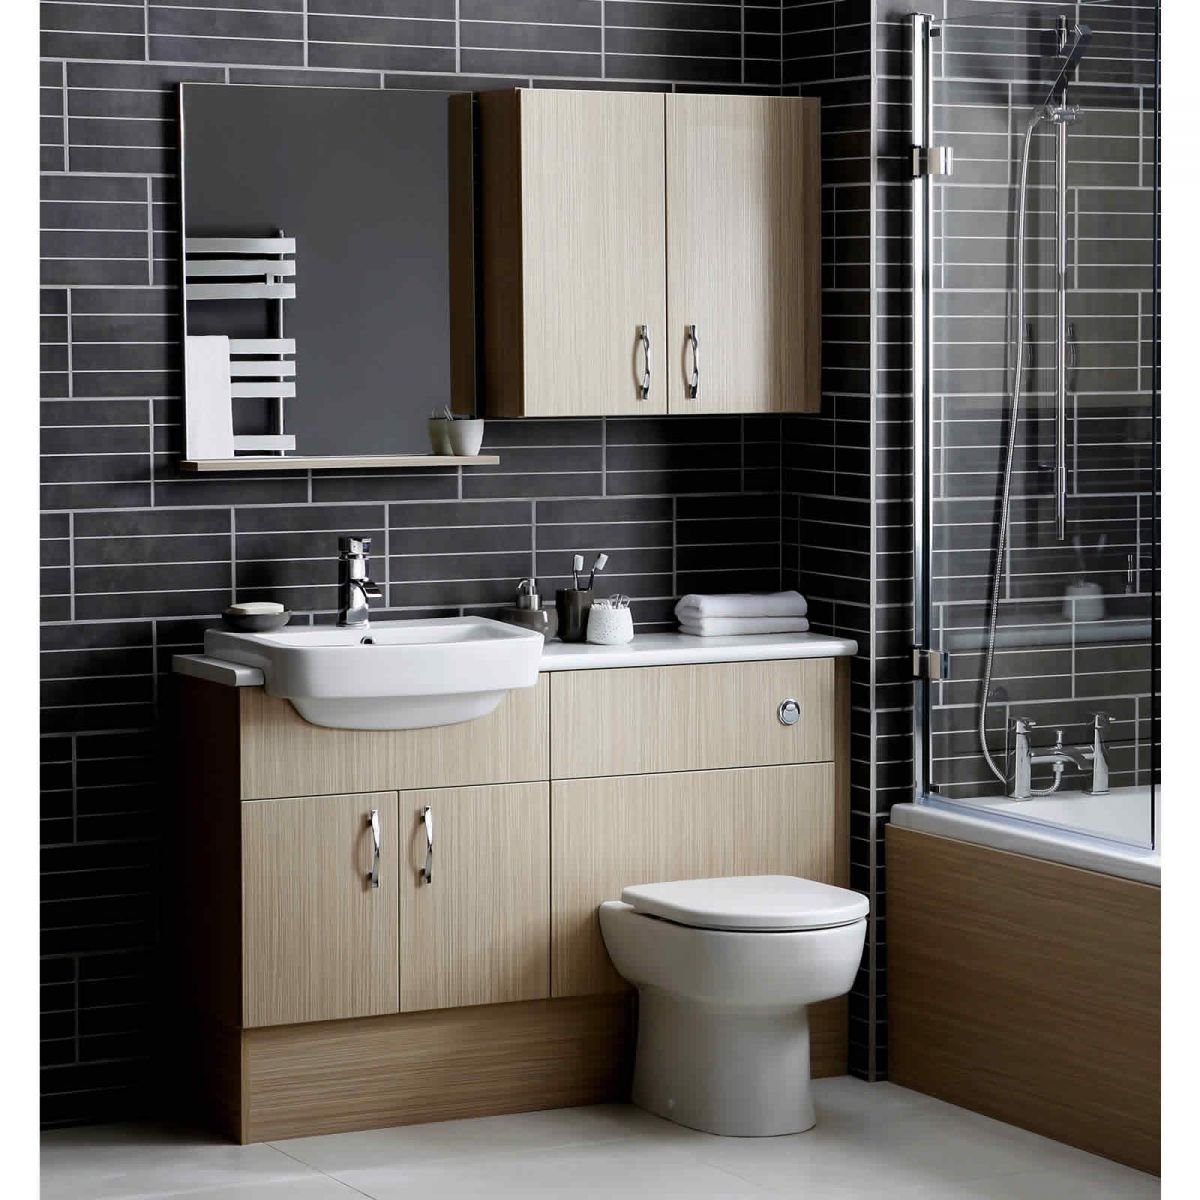 Noble dueto slimline toilet unit uk bathrooms for Bathroom furniture